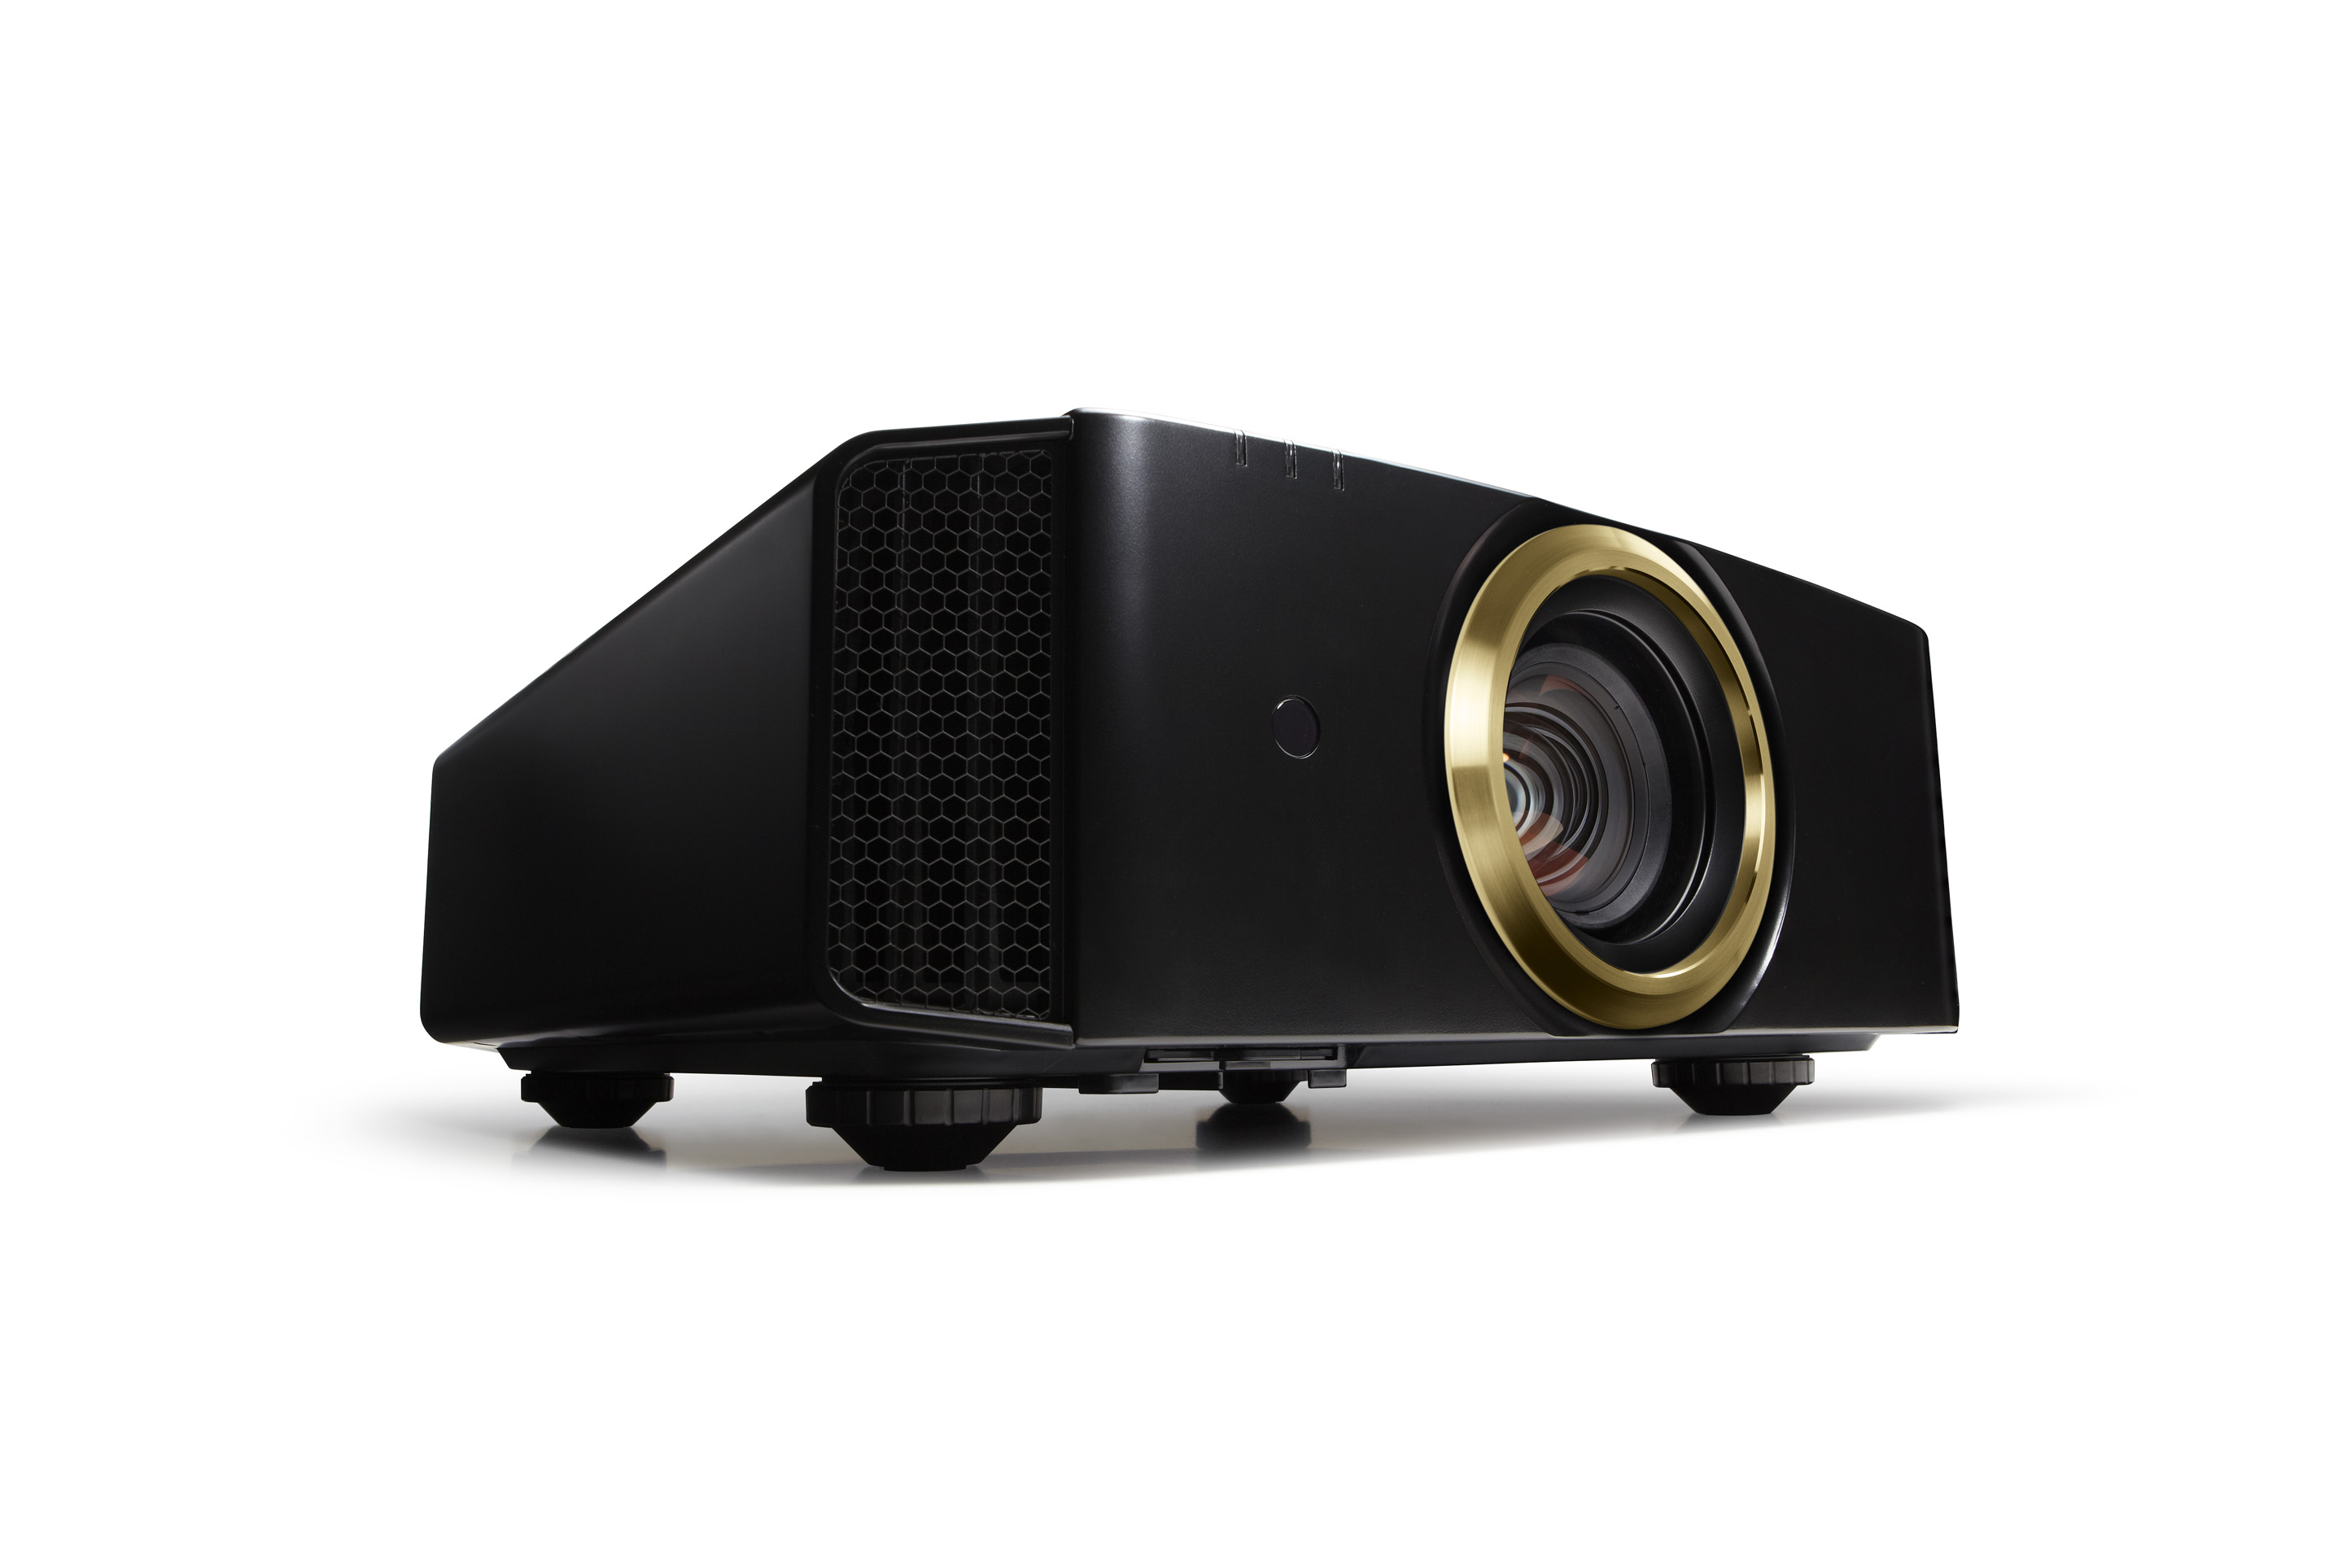 JVC DLA-RS420 Projector